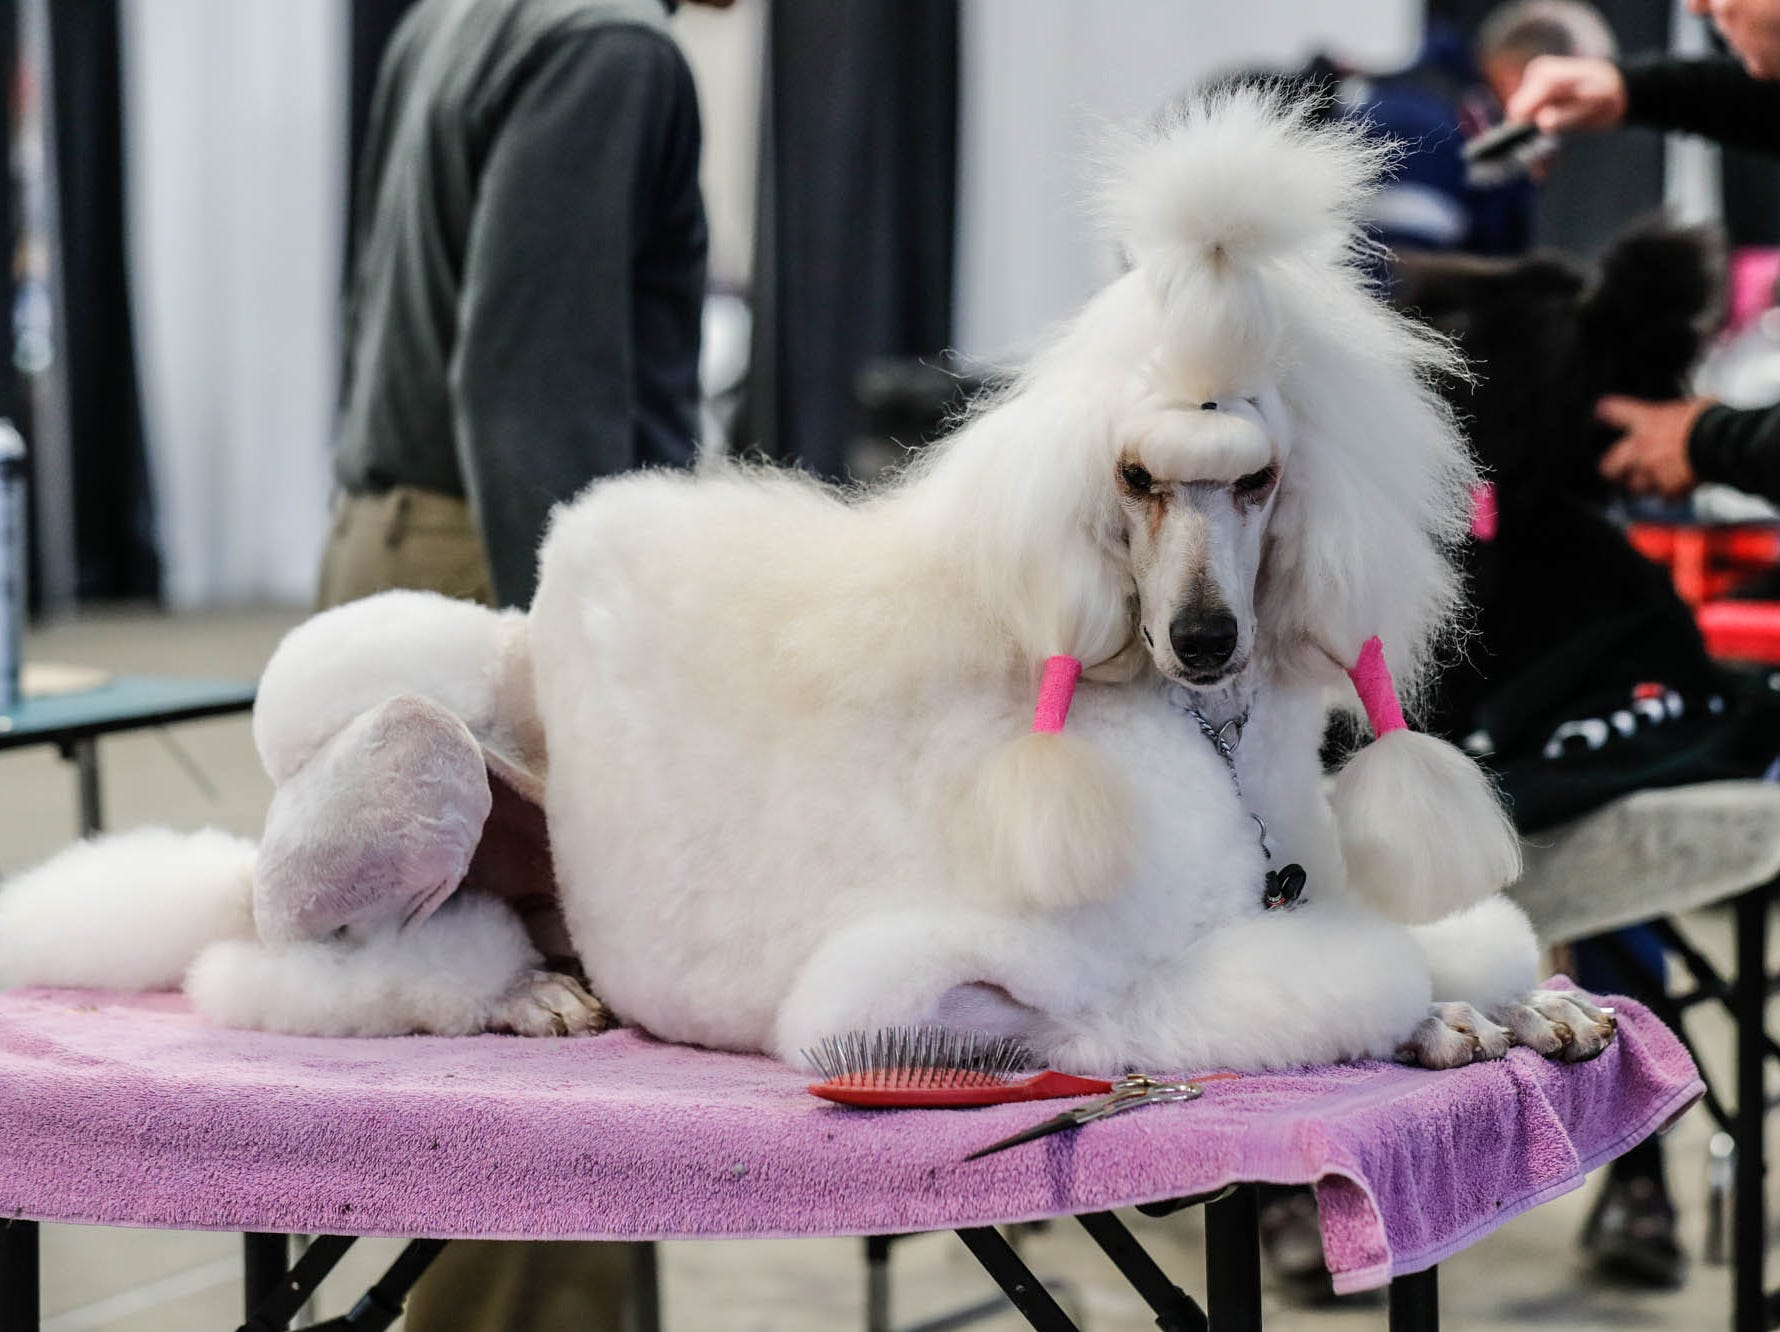 Molly, a Standard Poodle, is groomed during the Indy Winter Classic All Breed Dog Show, held at the Indiana State Fairgrounds on Sunday, Feb. 10, 2019.